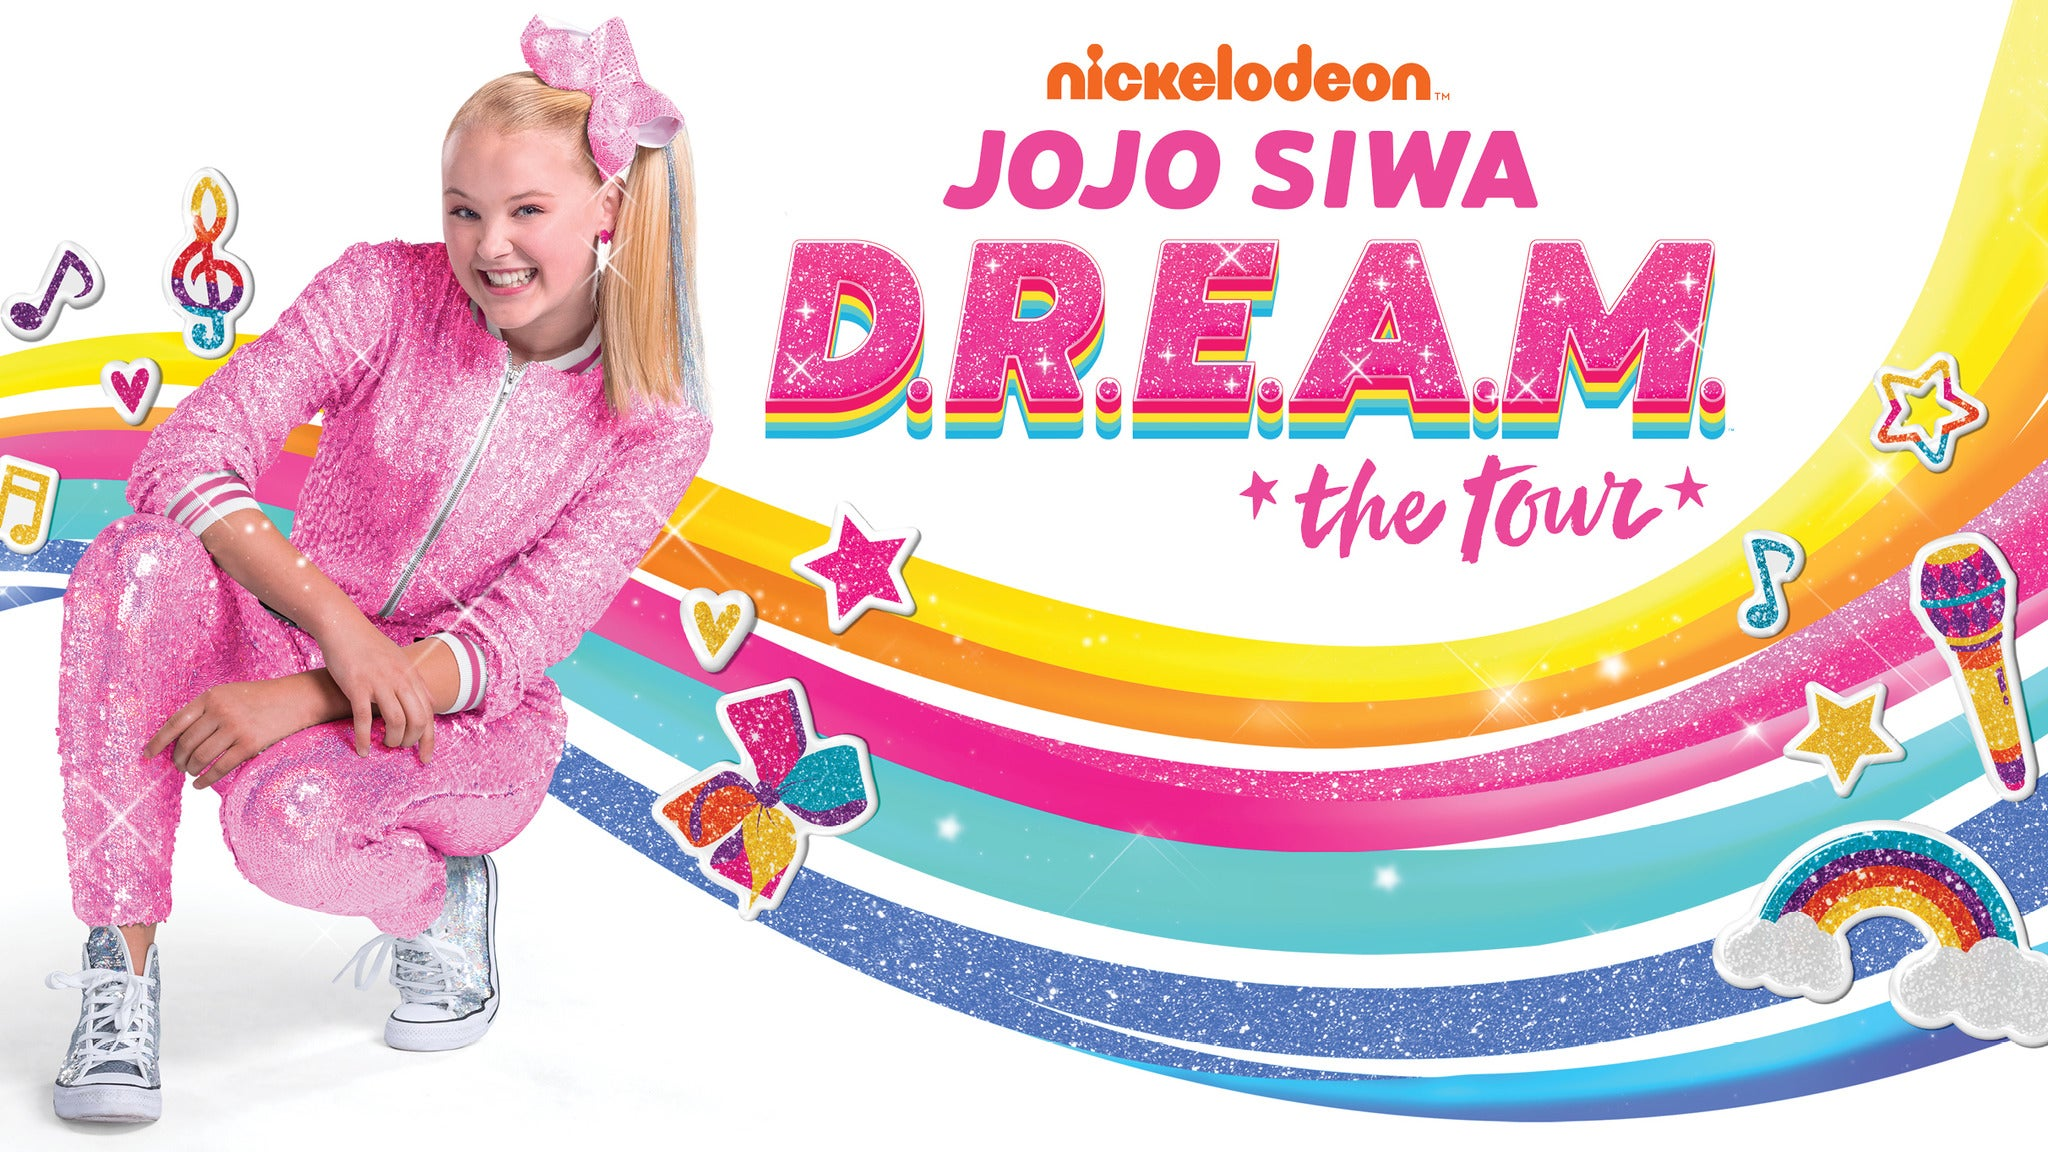 JoJo Siwa at Delaware State Fair